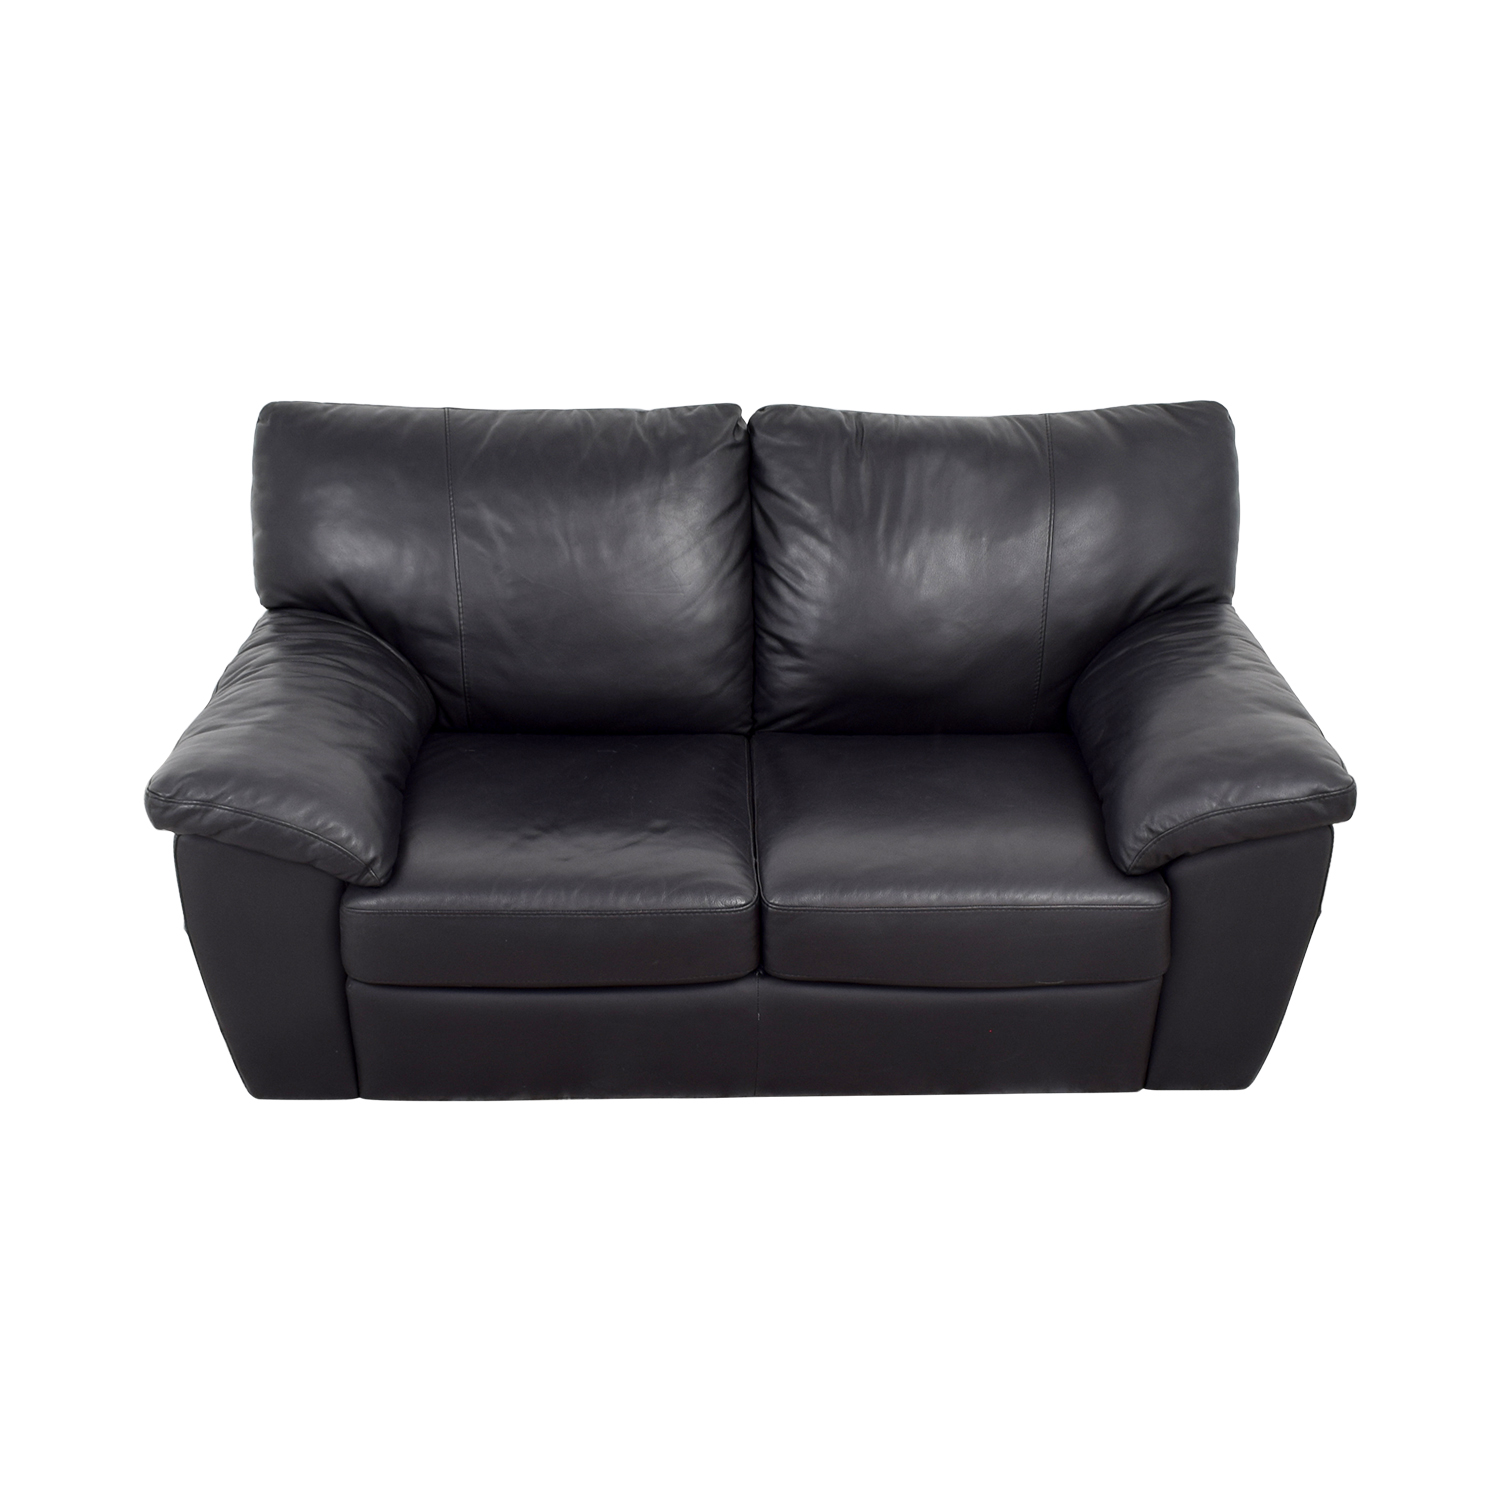 Ikea Leather Leather Sofas Ikea Furniture Ikea Love Seats Ikea Leath Ikea Convertible